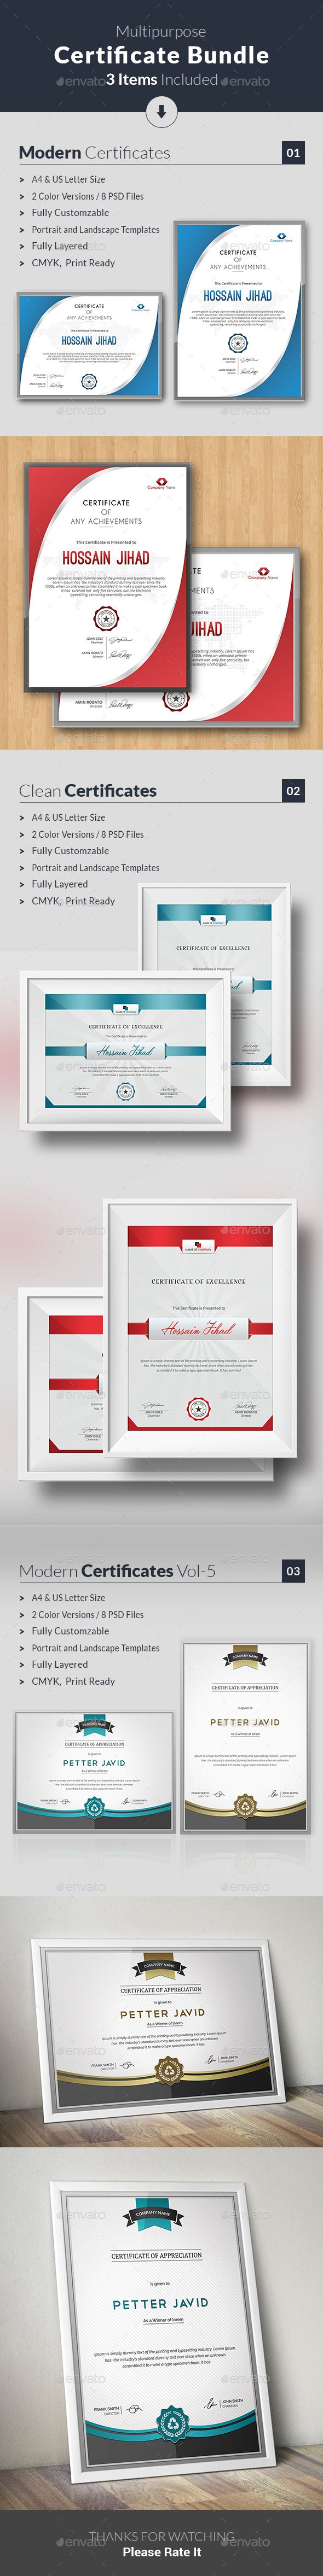 Multipurpose Certificates Template PSD Bundle. Download here: http://graphicriver.net/item/multipurpose-certificates-bundle/13838387?ref=ksioks